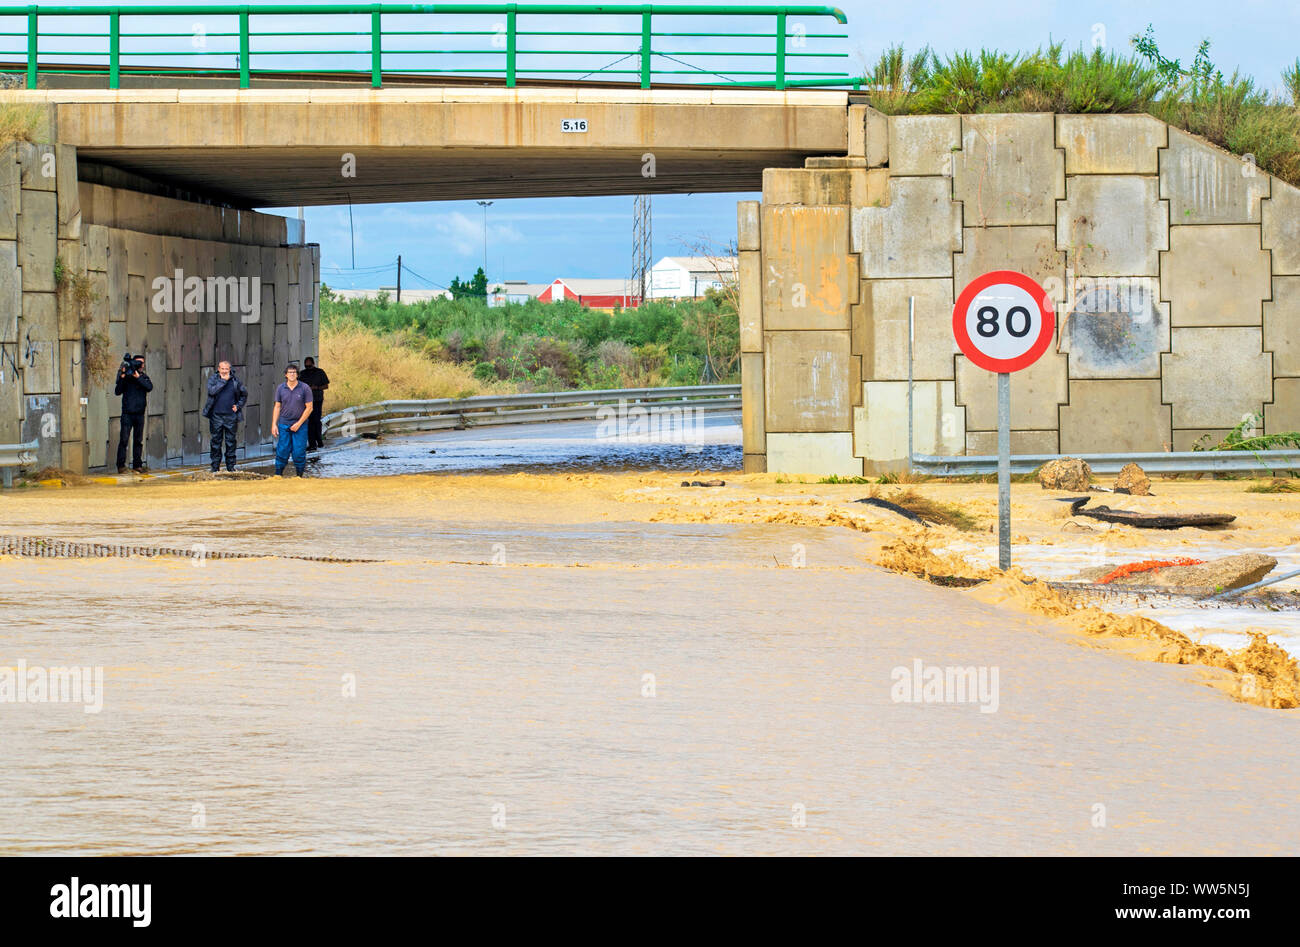 Murcia, Spain, September 13, 2019:  Floods and damages caused by torrential rain due to the atmospheric phenomenon DANA on September 12th to 13th. Stock Photo